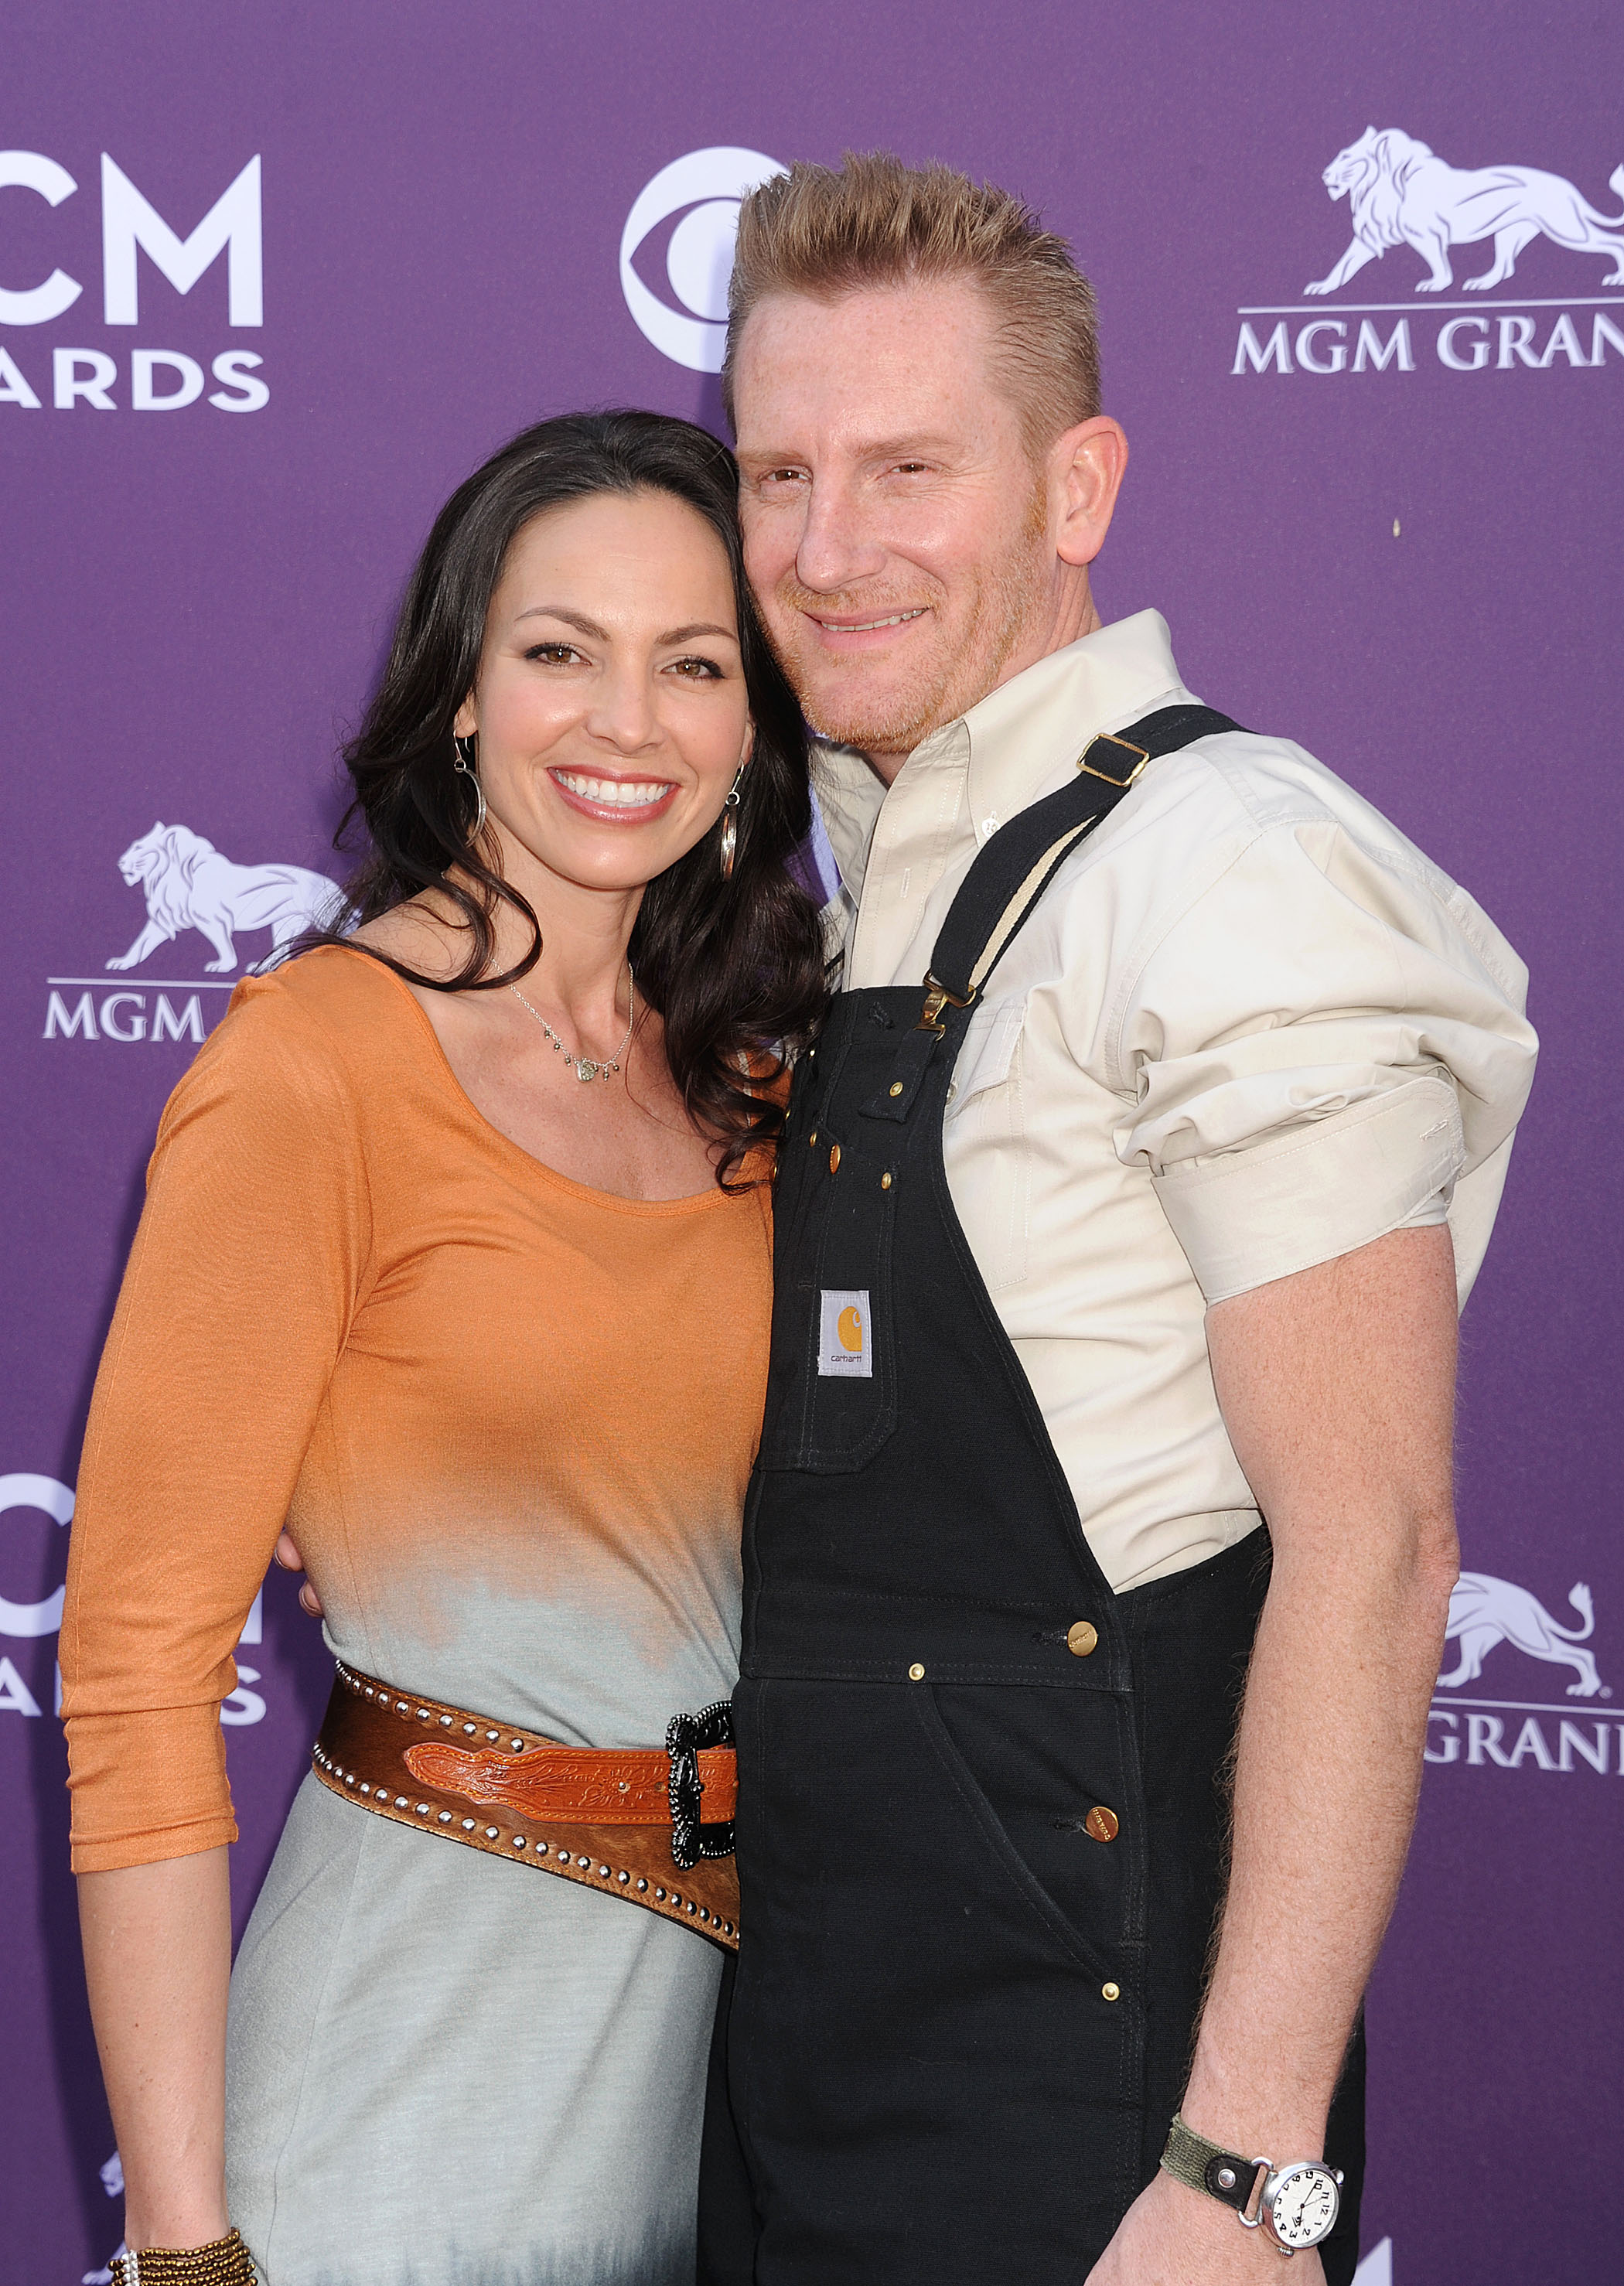 Rory Feek Posts Touching Instagram Tribute To His Wife Joey On The Anniversary Of Her Death They married in 2002 and first burst onto the national scene as a duo in 2008 after competing on cmt's 'can you duet?' prior to that, rory feek was a successful songwriter, penning hits like the chain of love for clay walker and some. https www lifeandstylemag com posts rory feek wife death instagram tribute 126953